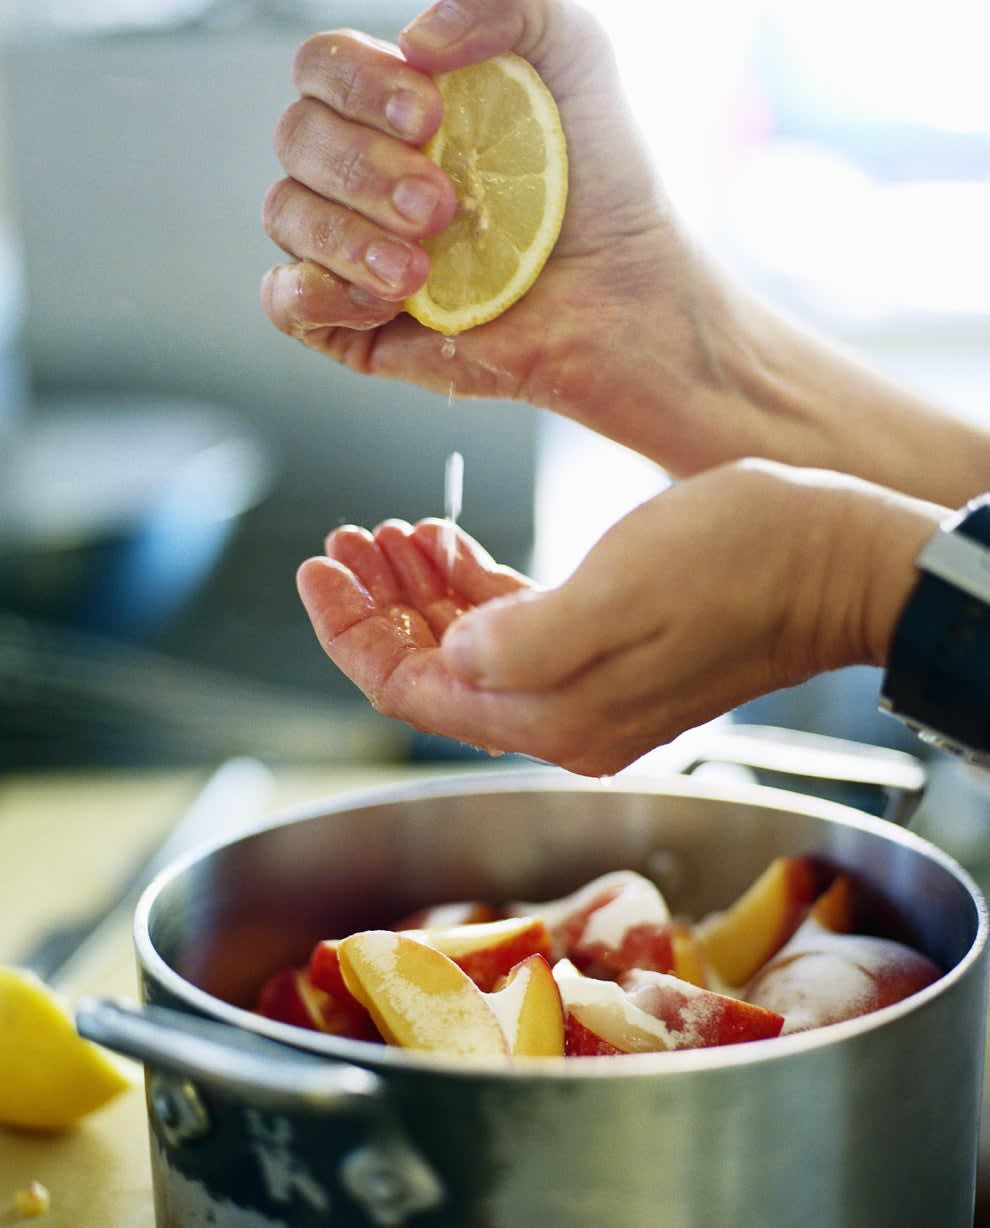 Someone squeezing a lemon into a pot of peaches.